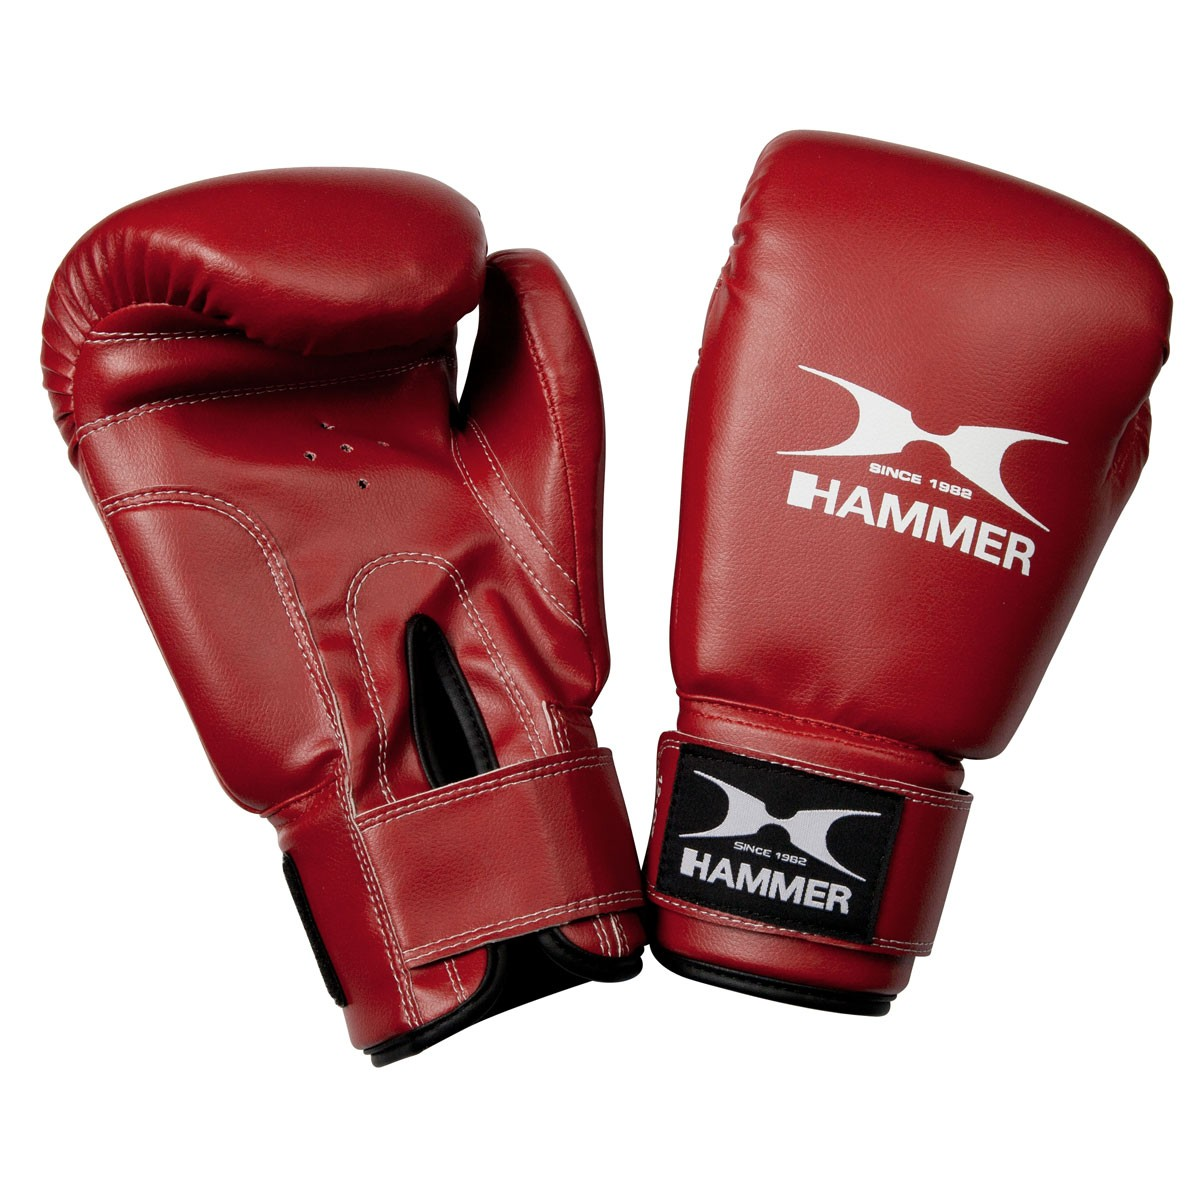 Buy HAMMER BOXING boxing gloves Fit red